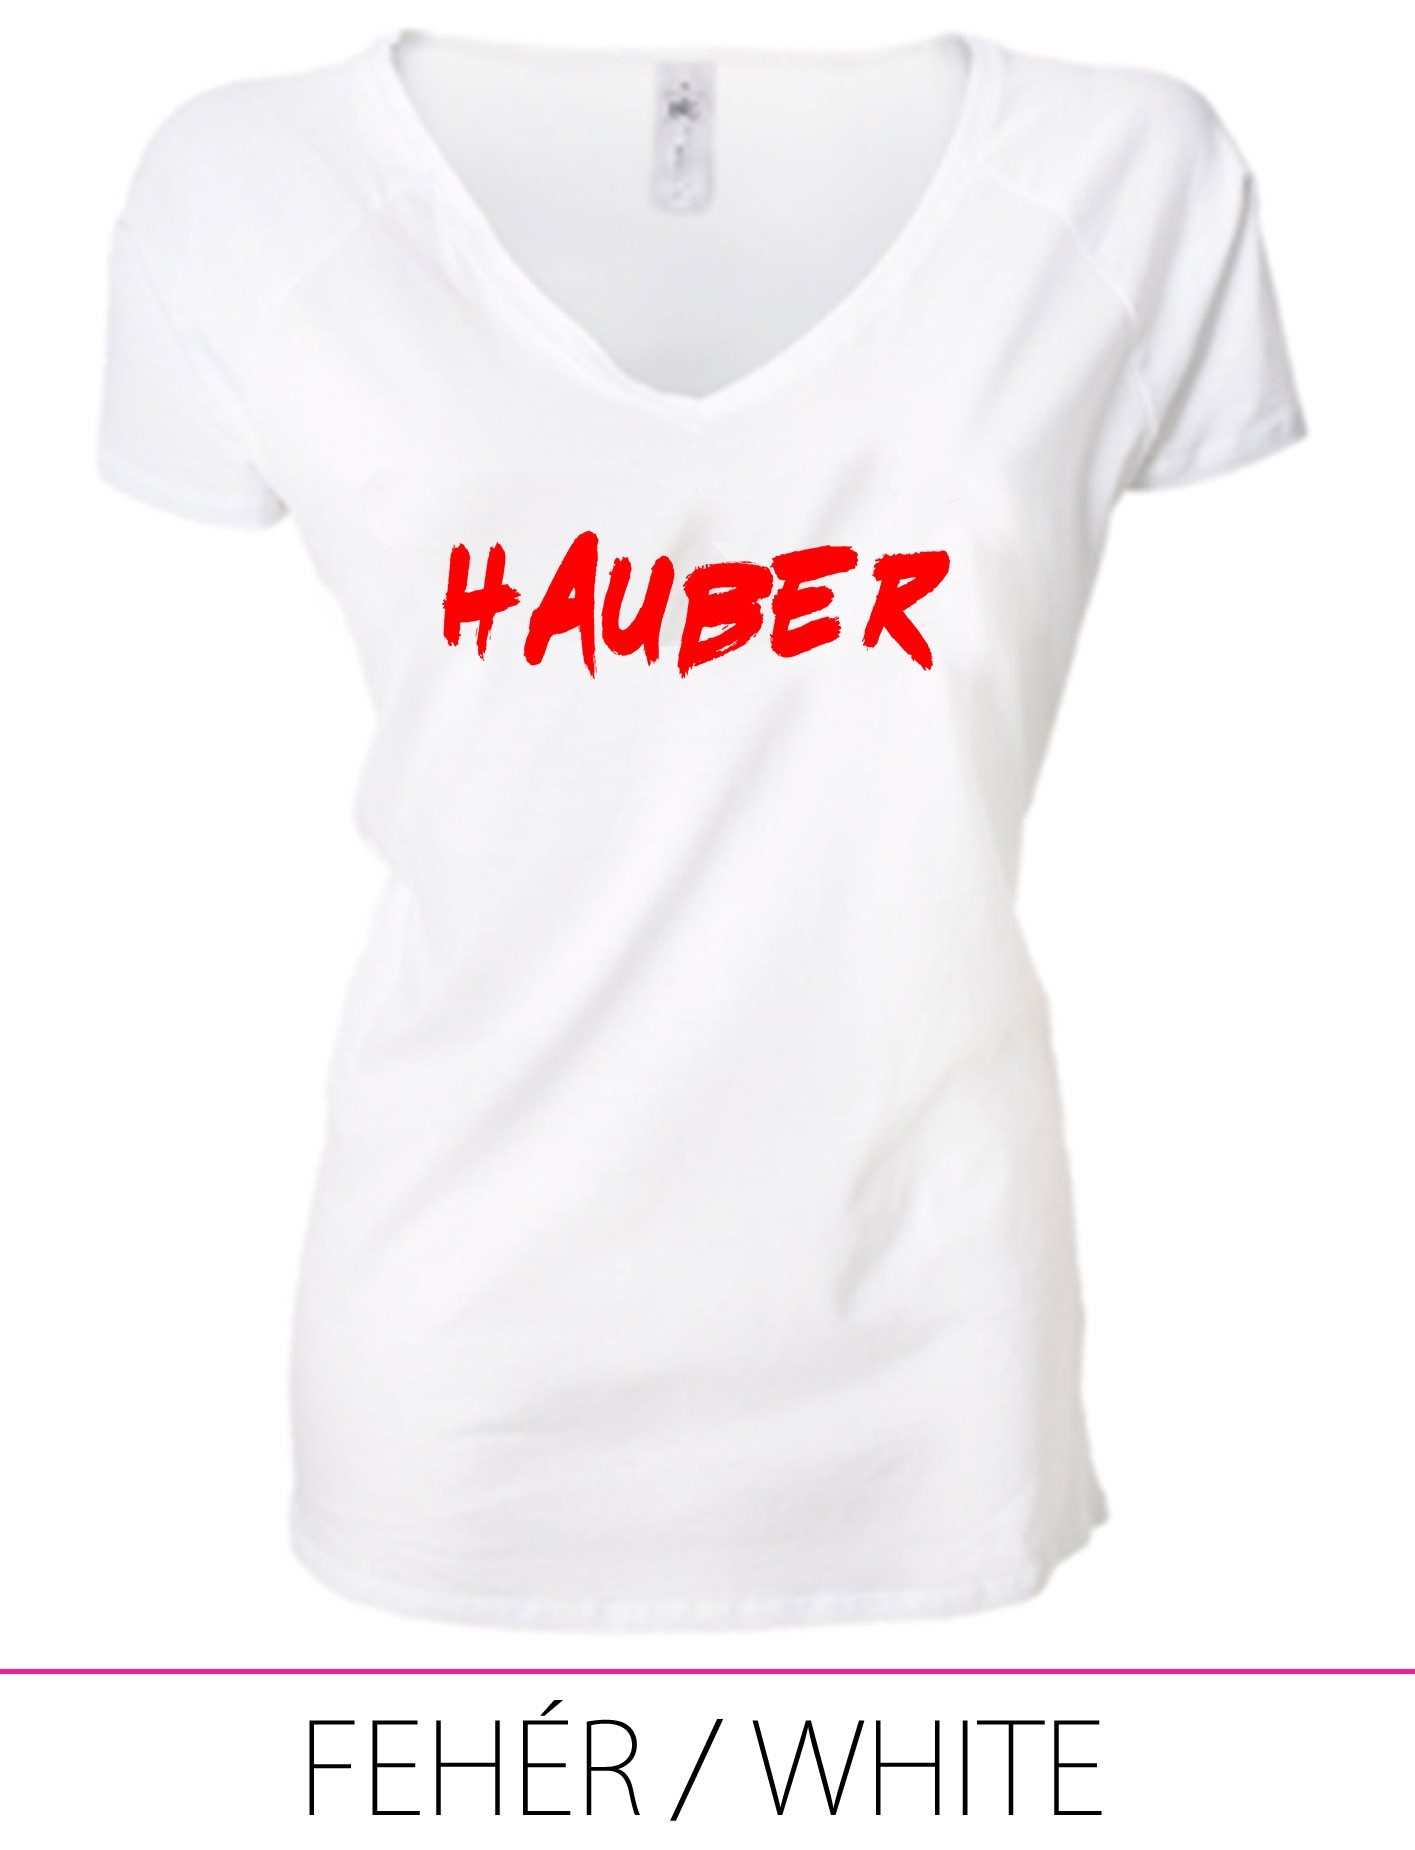 LADIES PREMIUM V NECK T-SHIRT HAUBER WHITE